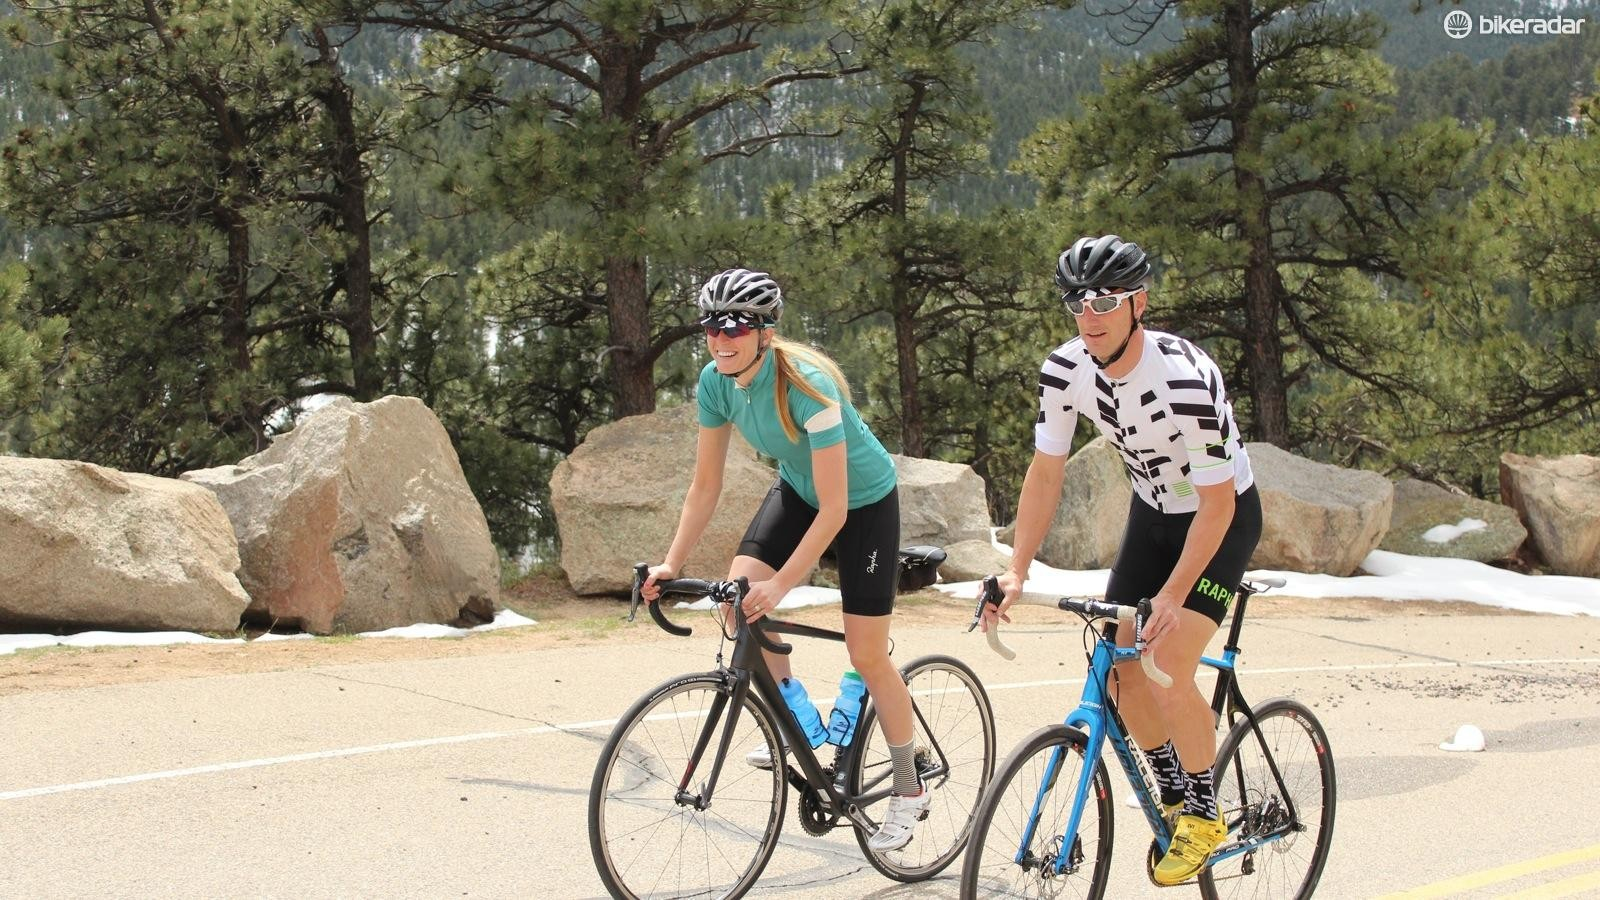 Rapha has two basic styles of jersey - dyed Sportwool at left and printed polyester at right